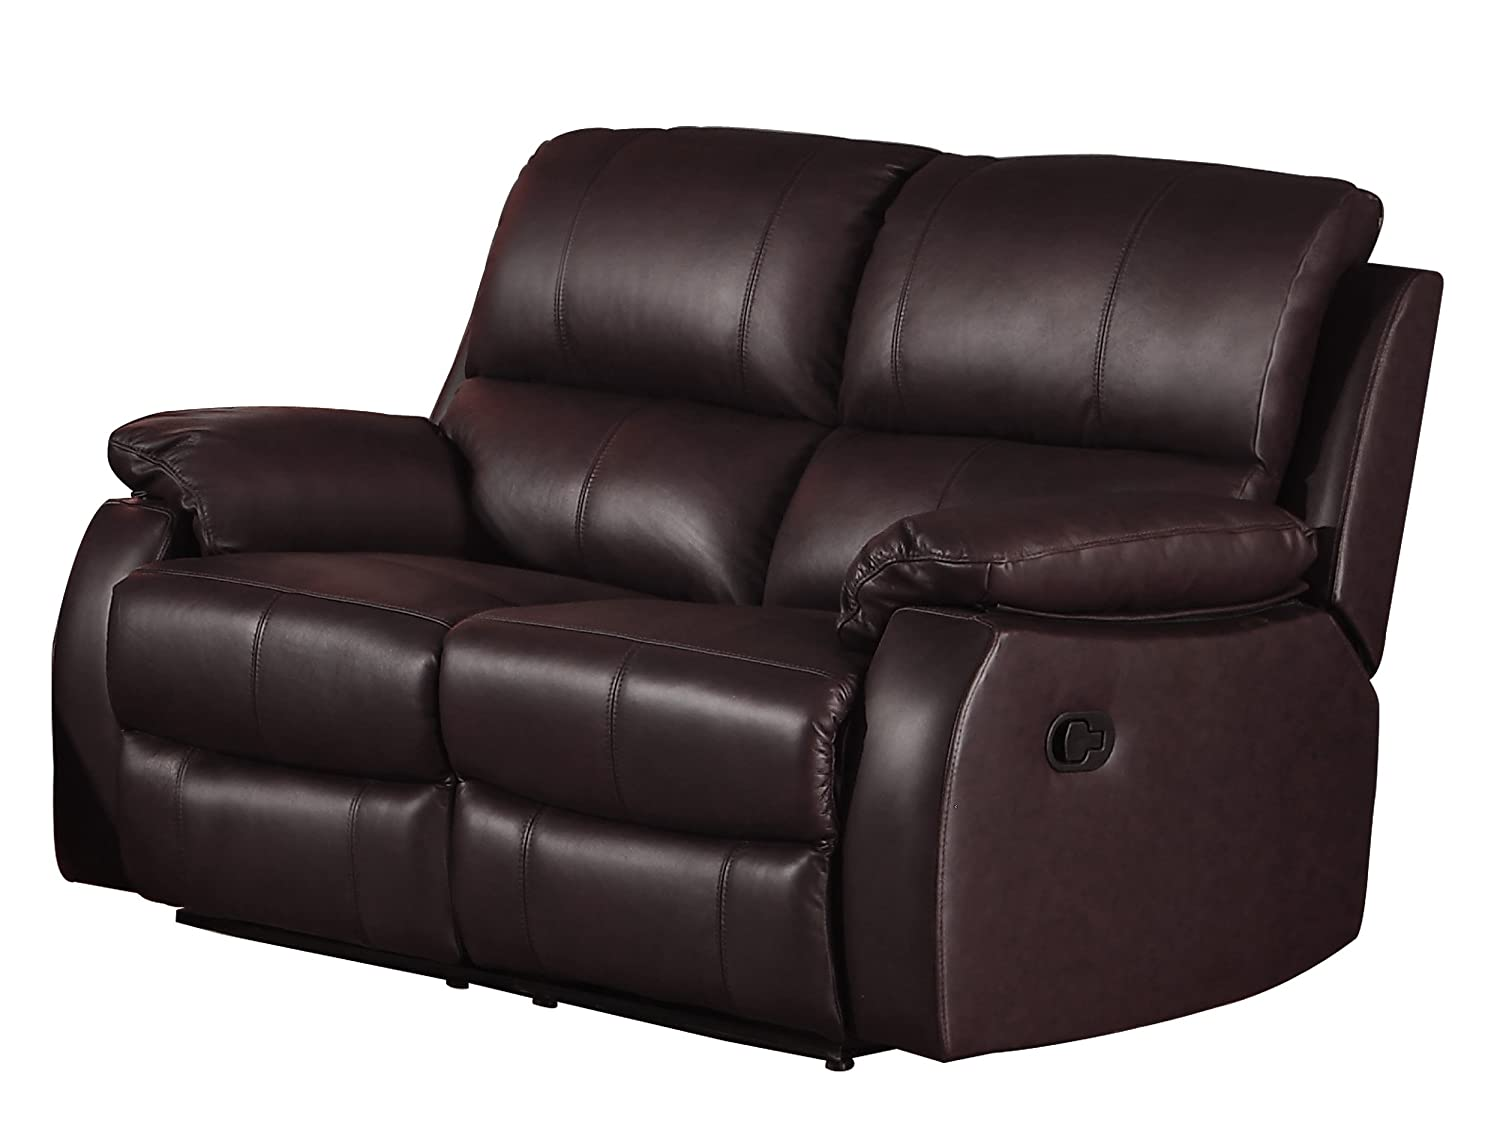 sd loveseat for oberson with recliner gunsmoke double console